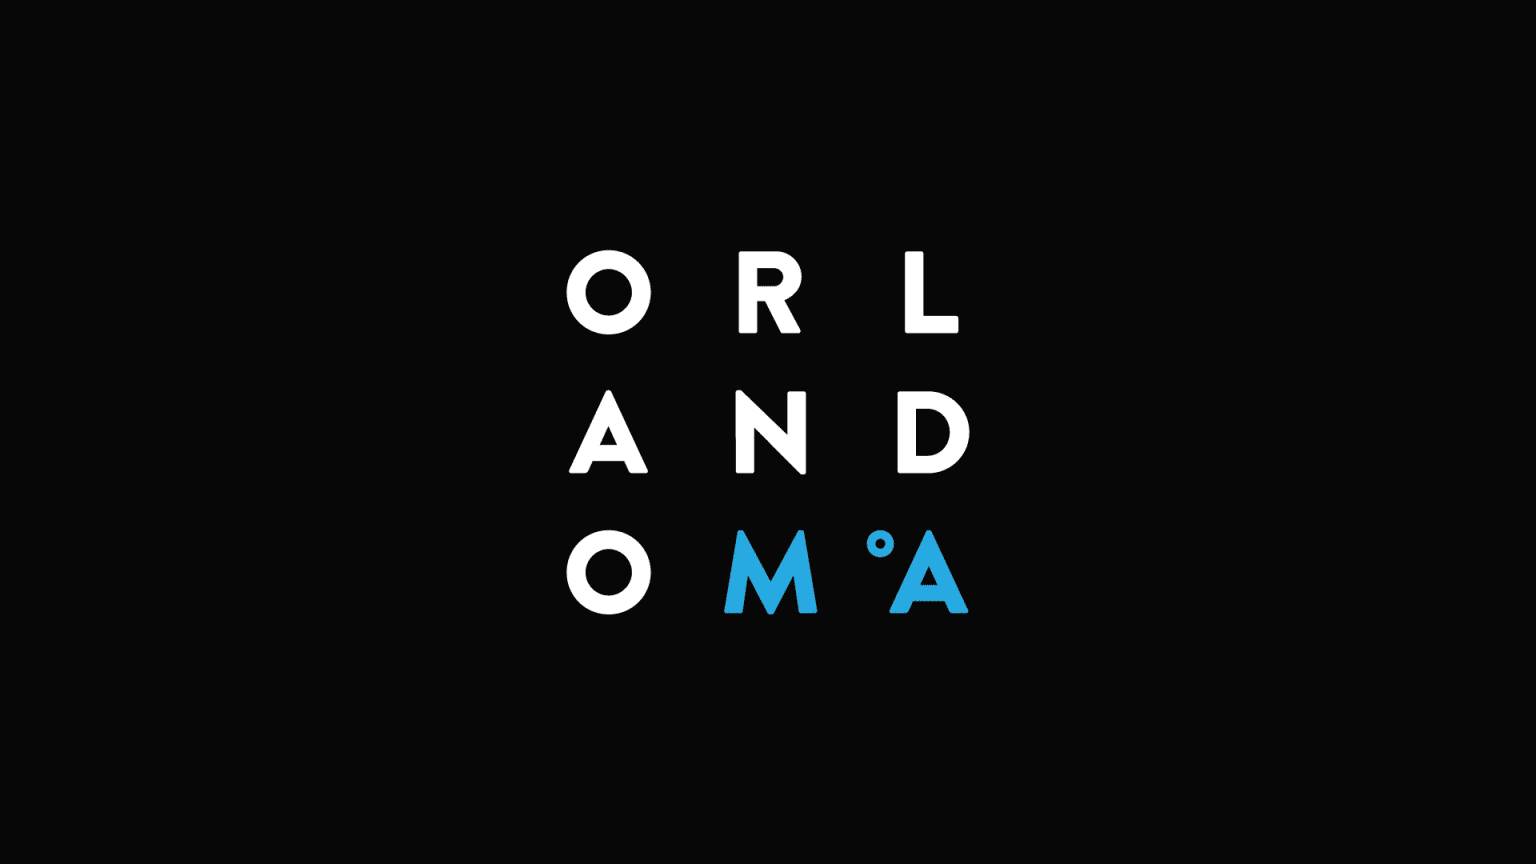 Orlando Museum of Art — Rebrand